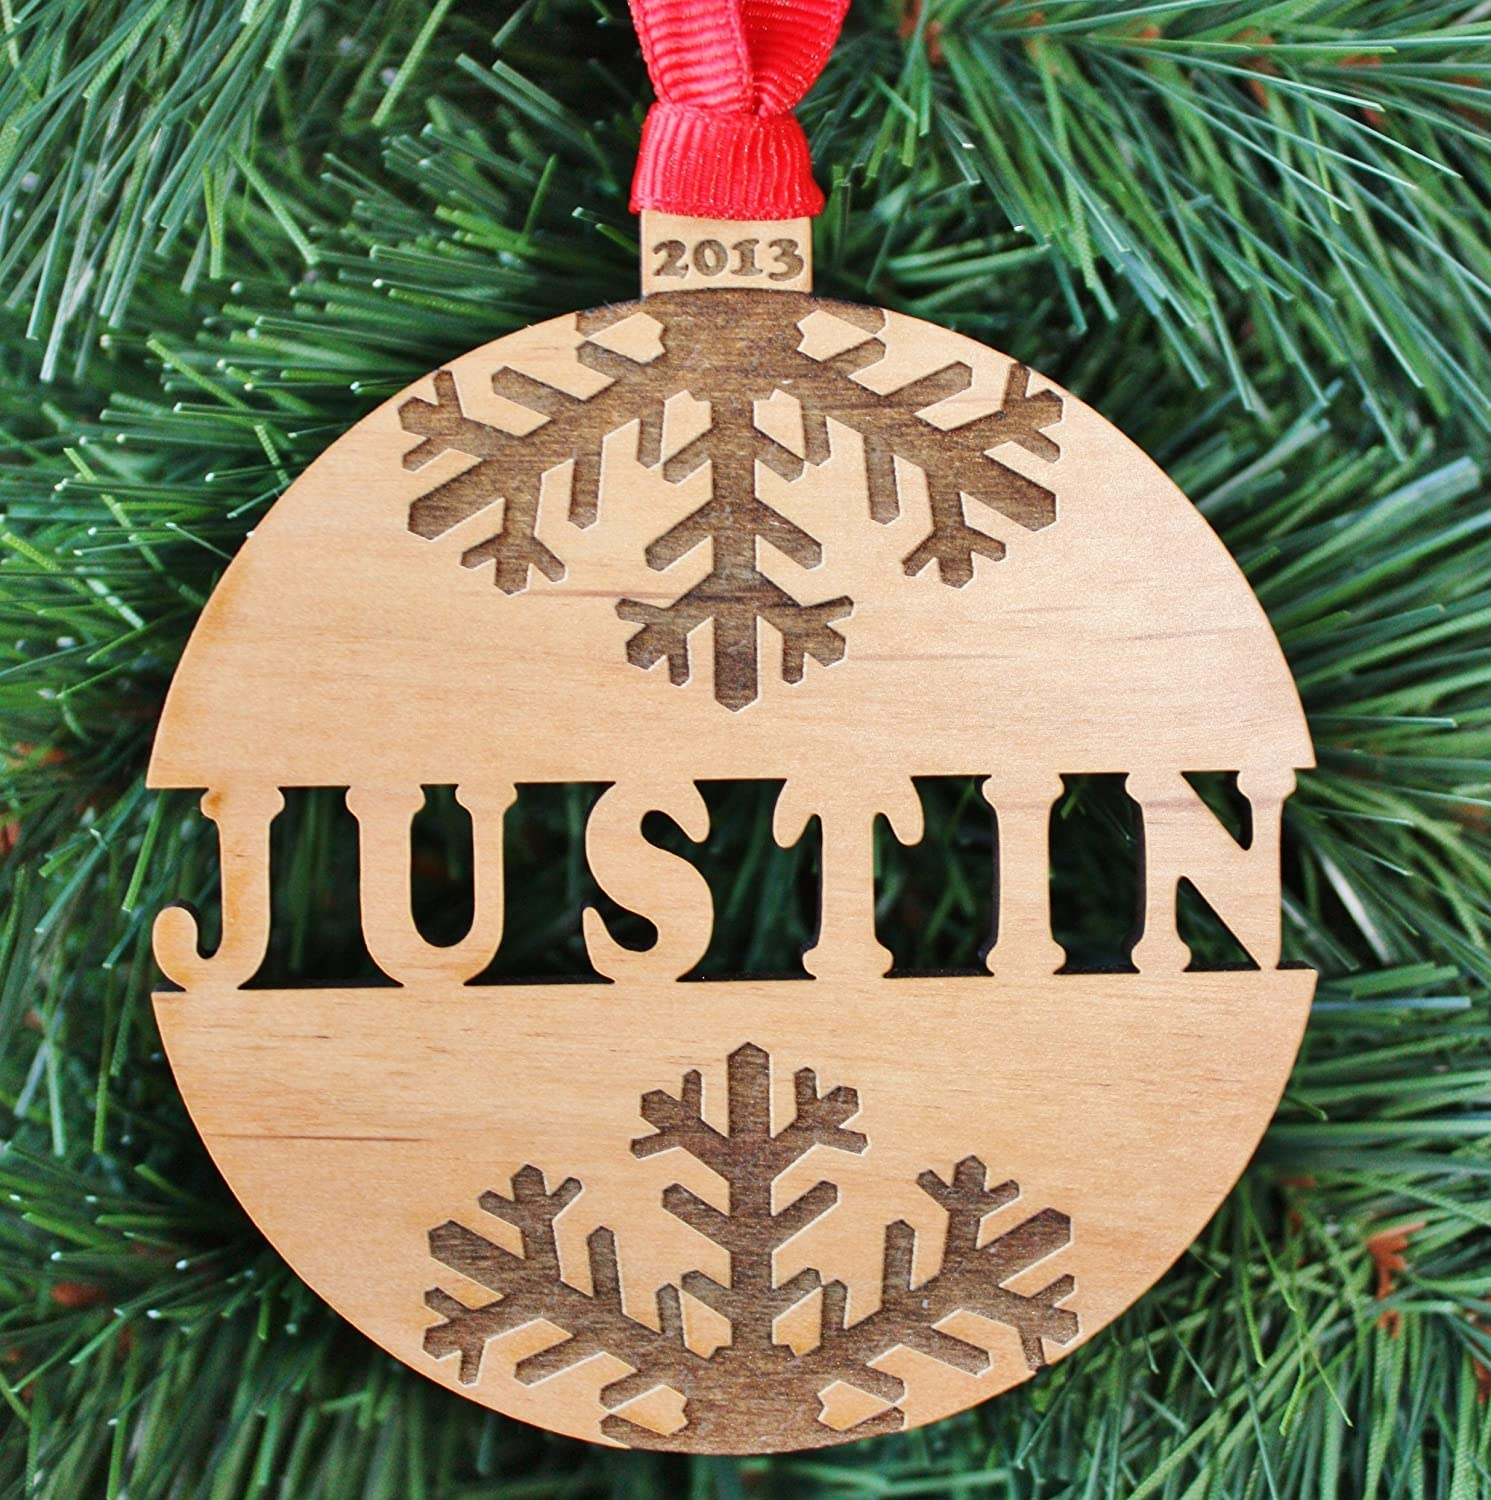 Christmas Ornaments With Names On Them.Personalized Name Christmas Ornament Handmade Engraved Christmas Ornaments Orn09